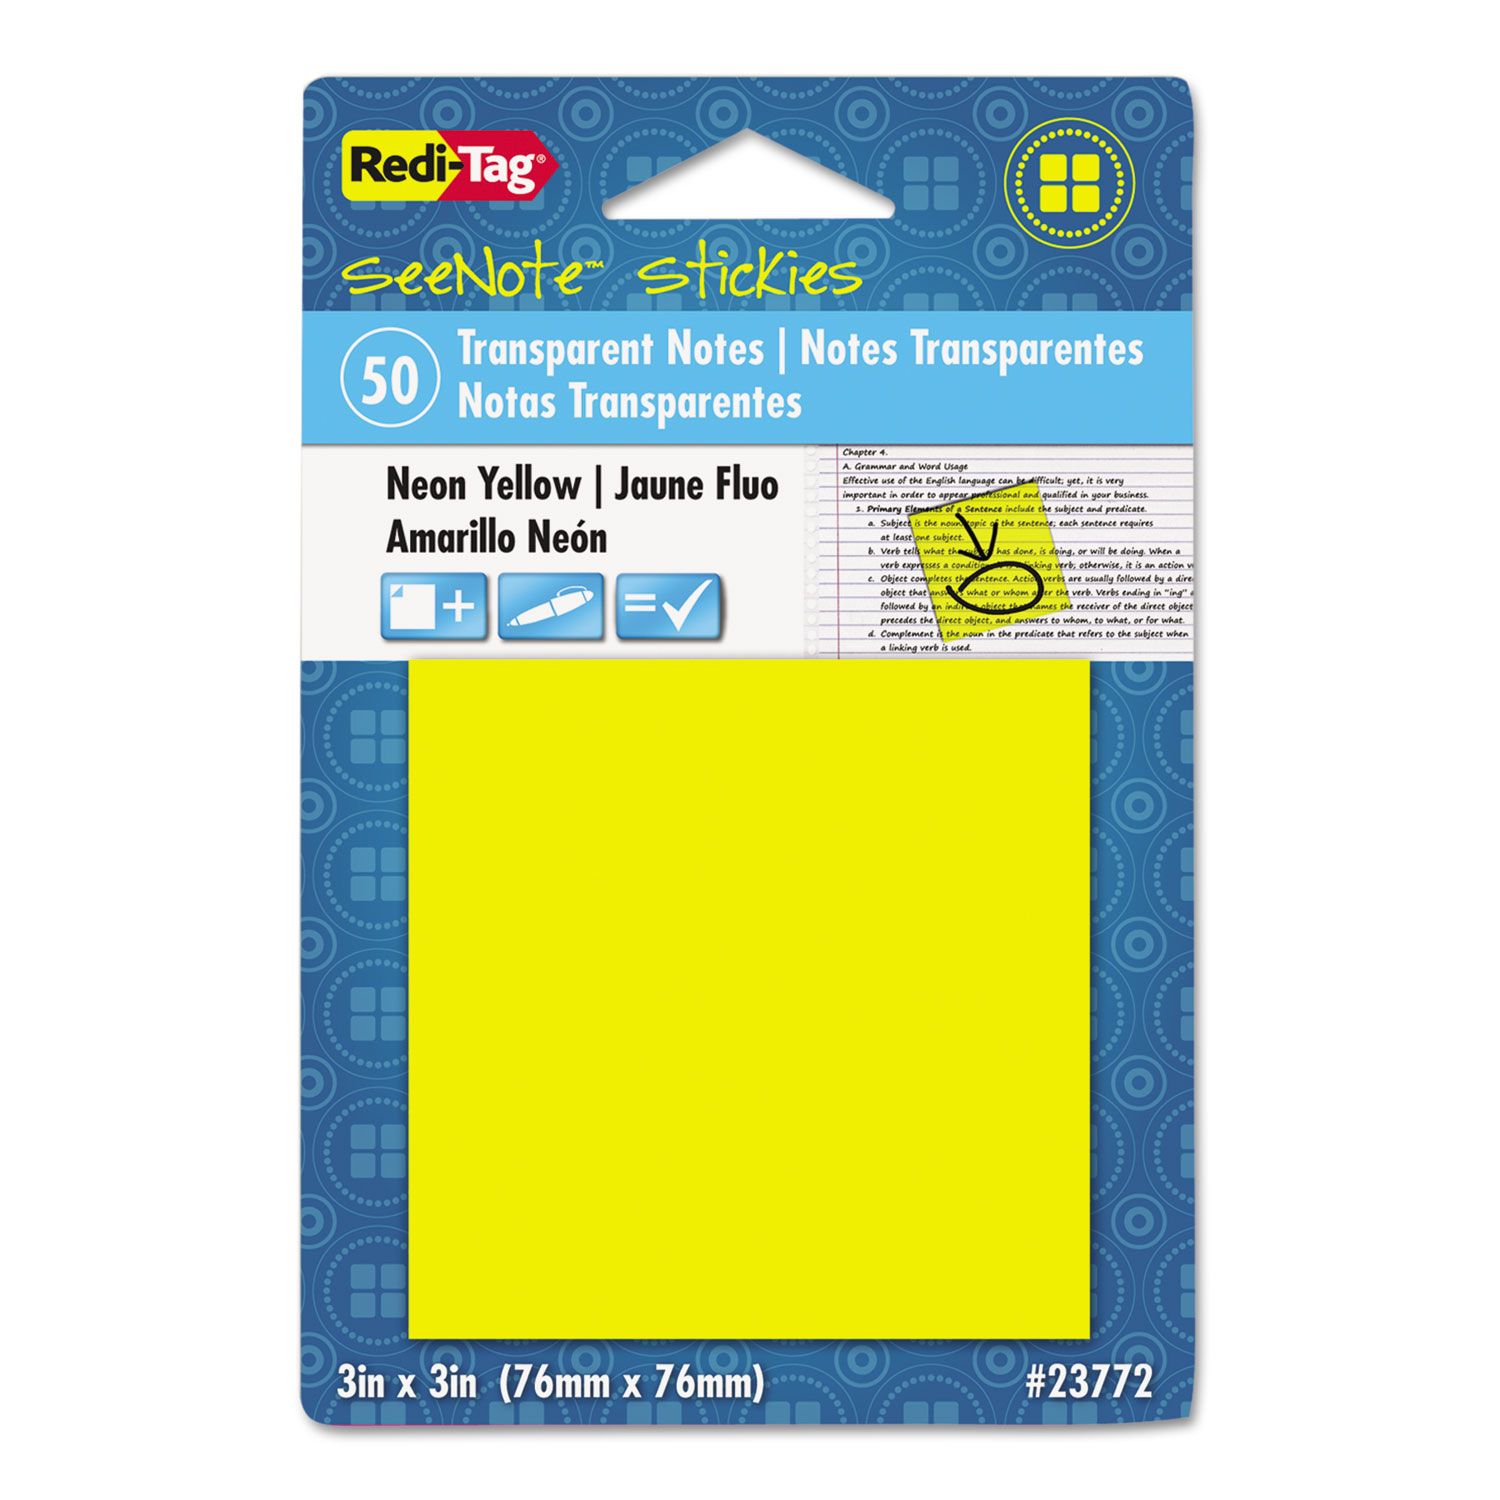 Transparent Film Sticky Notes, 3 x 3, Neon Orange, 50-Sheets/Pad